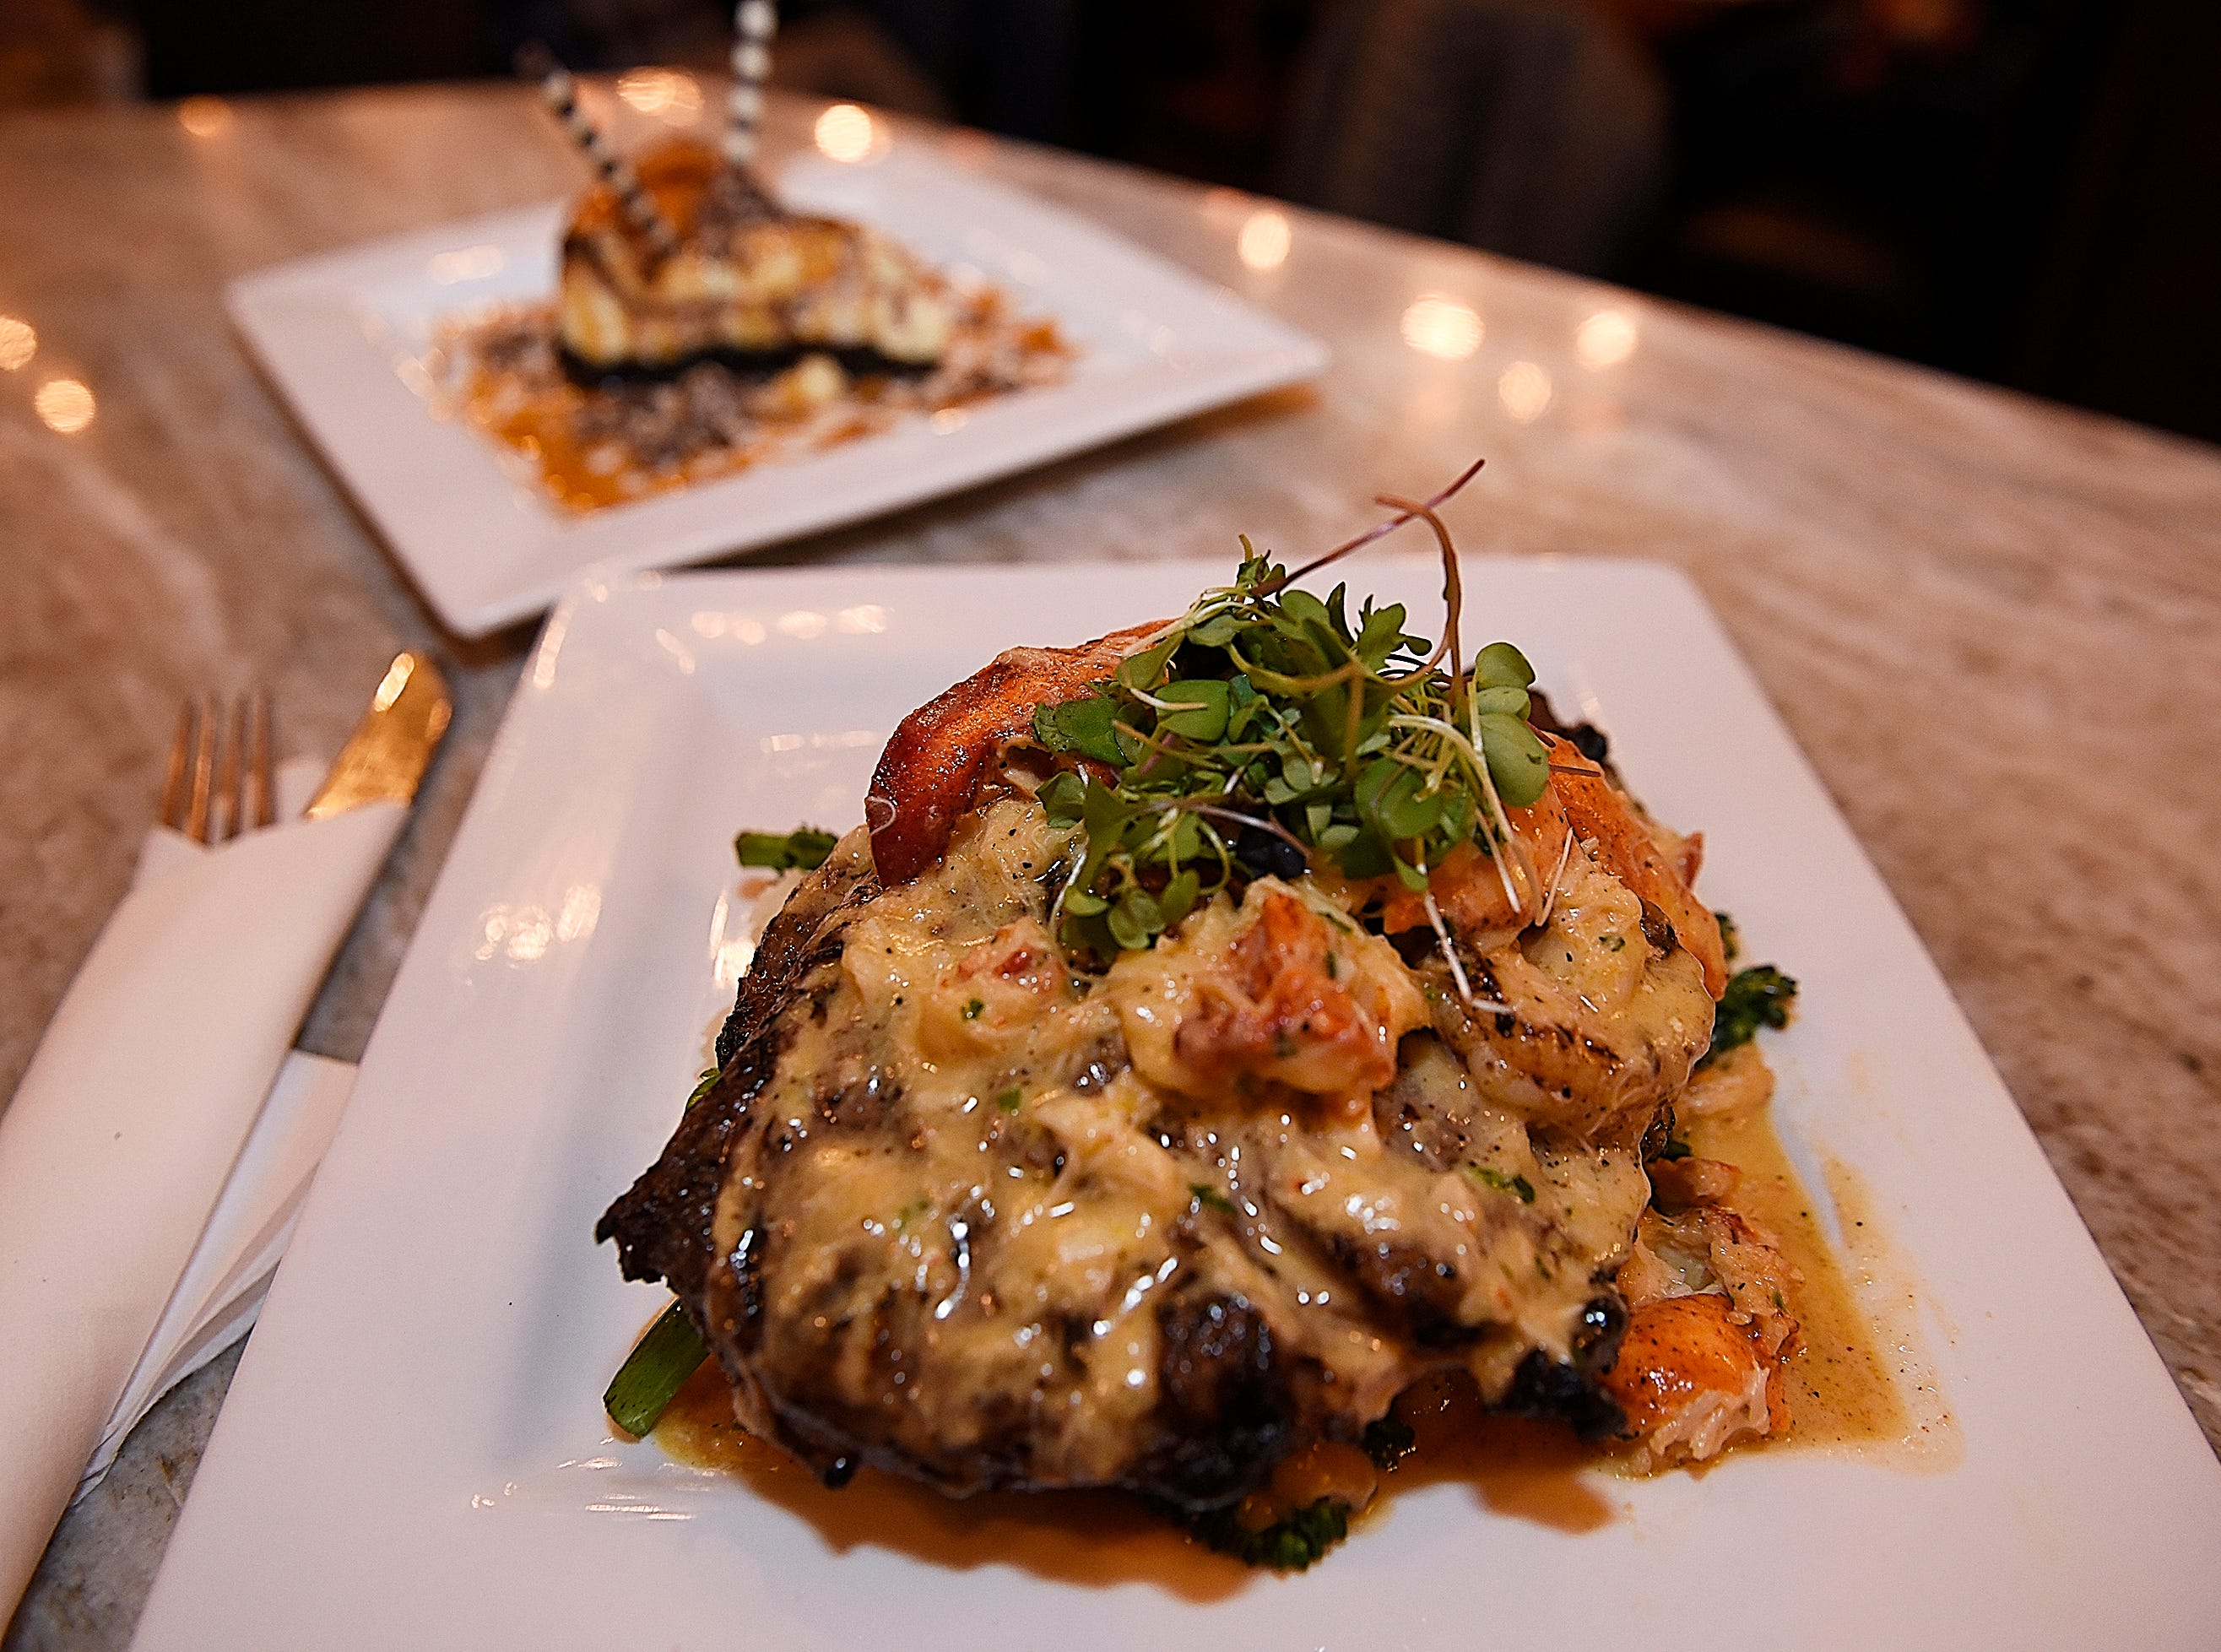 A plate of the Oscar de Le' Culture, (grass-fed Angus ribeye with broccolini, jumbo lump crab, rock lobster tail and whipped mash potatoes) with a plate of the Black Bottom Cheesecake in the background.